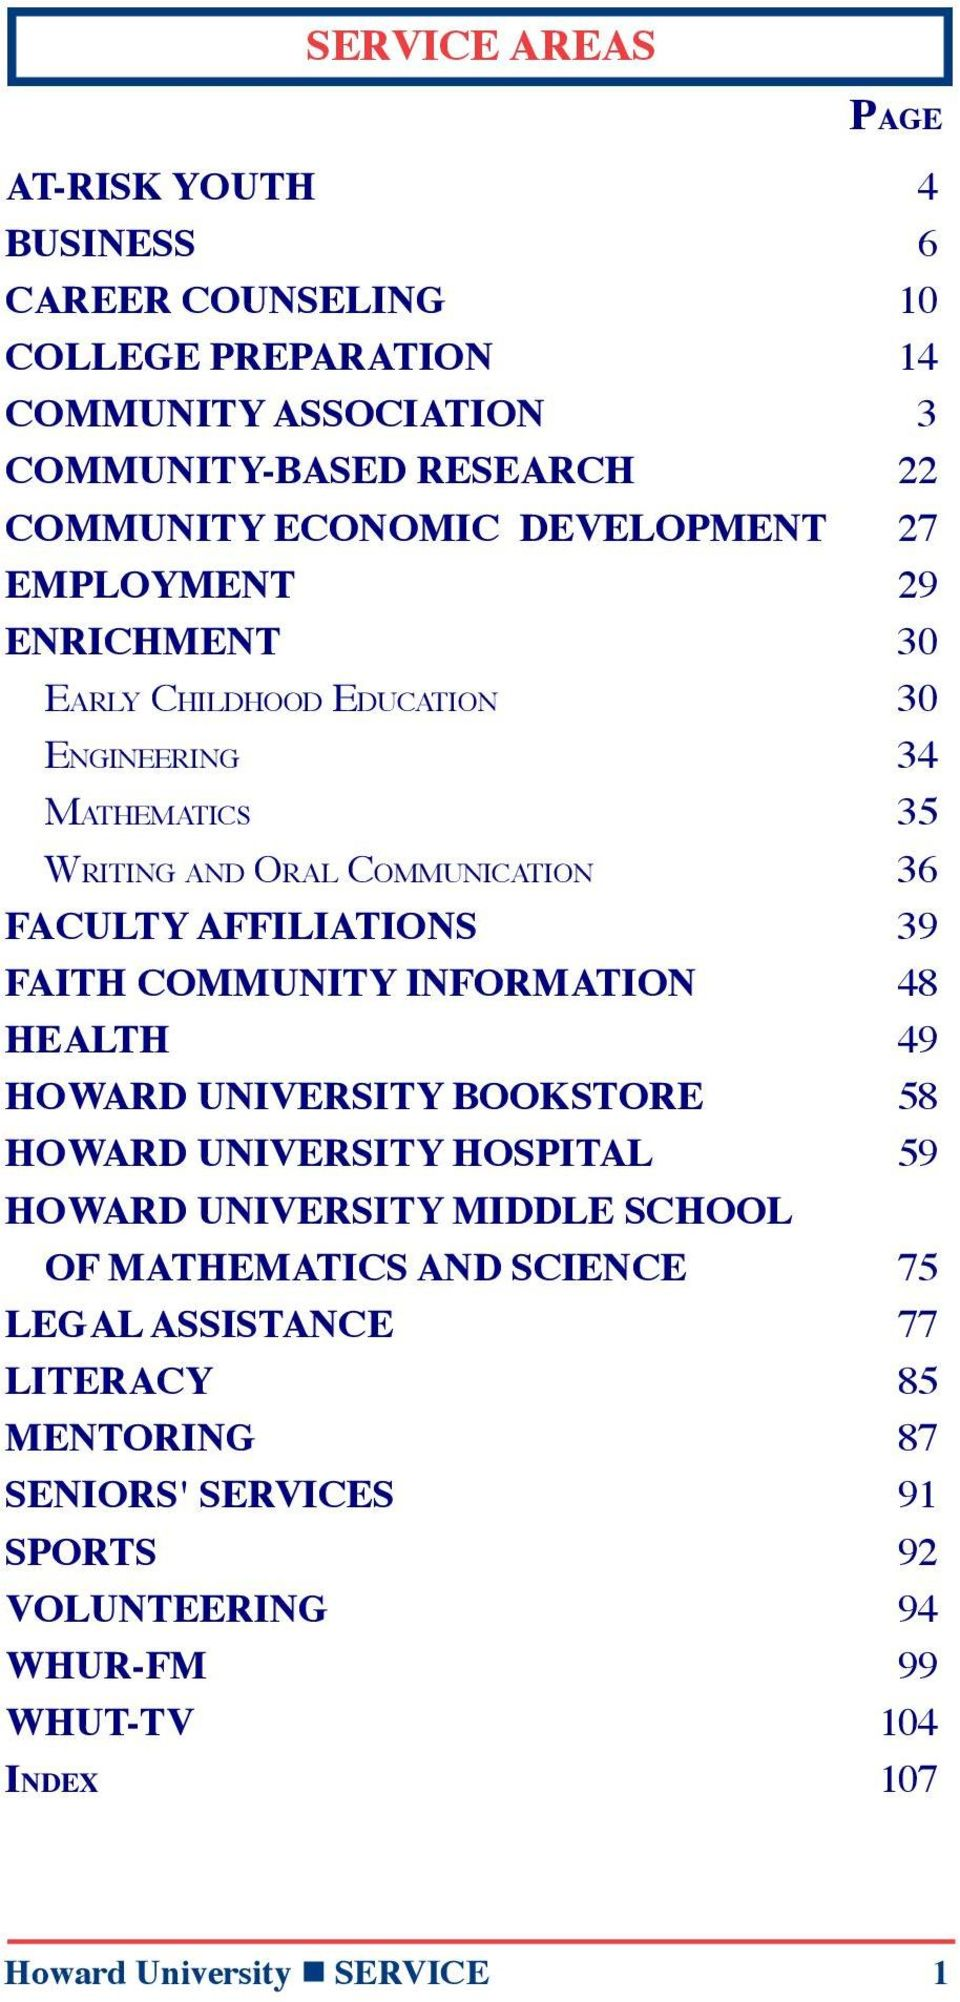 FACULTY AFFILIATIONS 39 FAITH COMMUNITY INFORMATION 48 HEALTH 49 HOWARD UNIVERSITY BOOKSTORE 58 HOWARD UNIVERSITY HOSPITAL 59 HOWARD UNIVERSITY MIDDLE SCHOOL OF